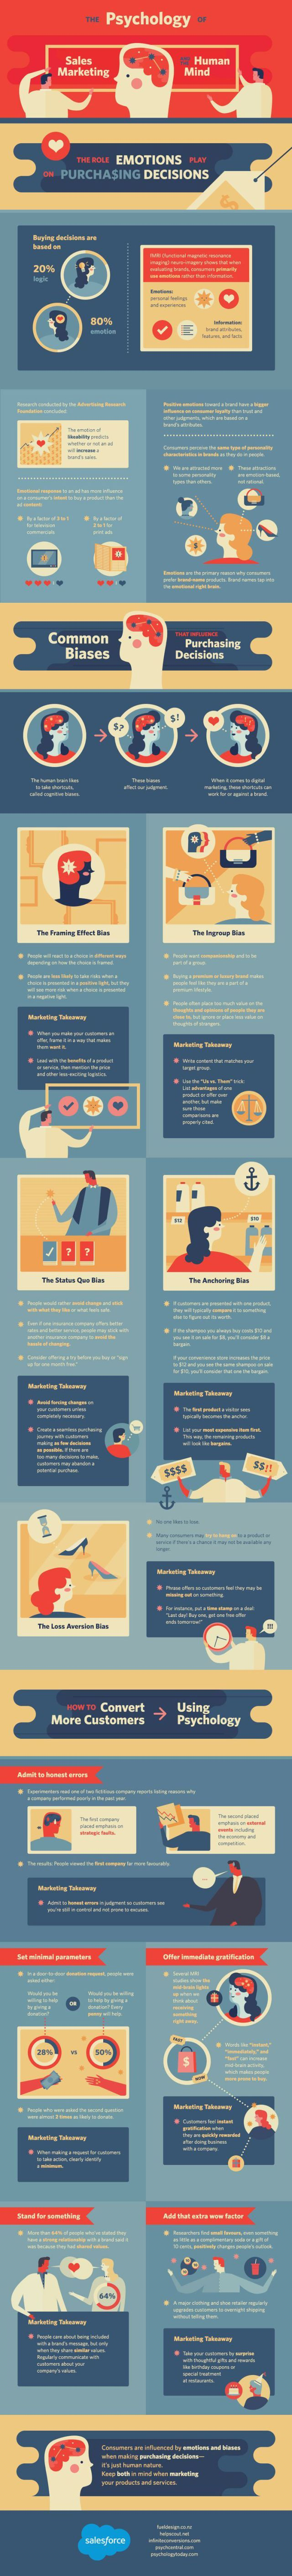 best ideas about s job description part time psychology the psychology of s marketing and the human mind infographic